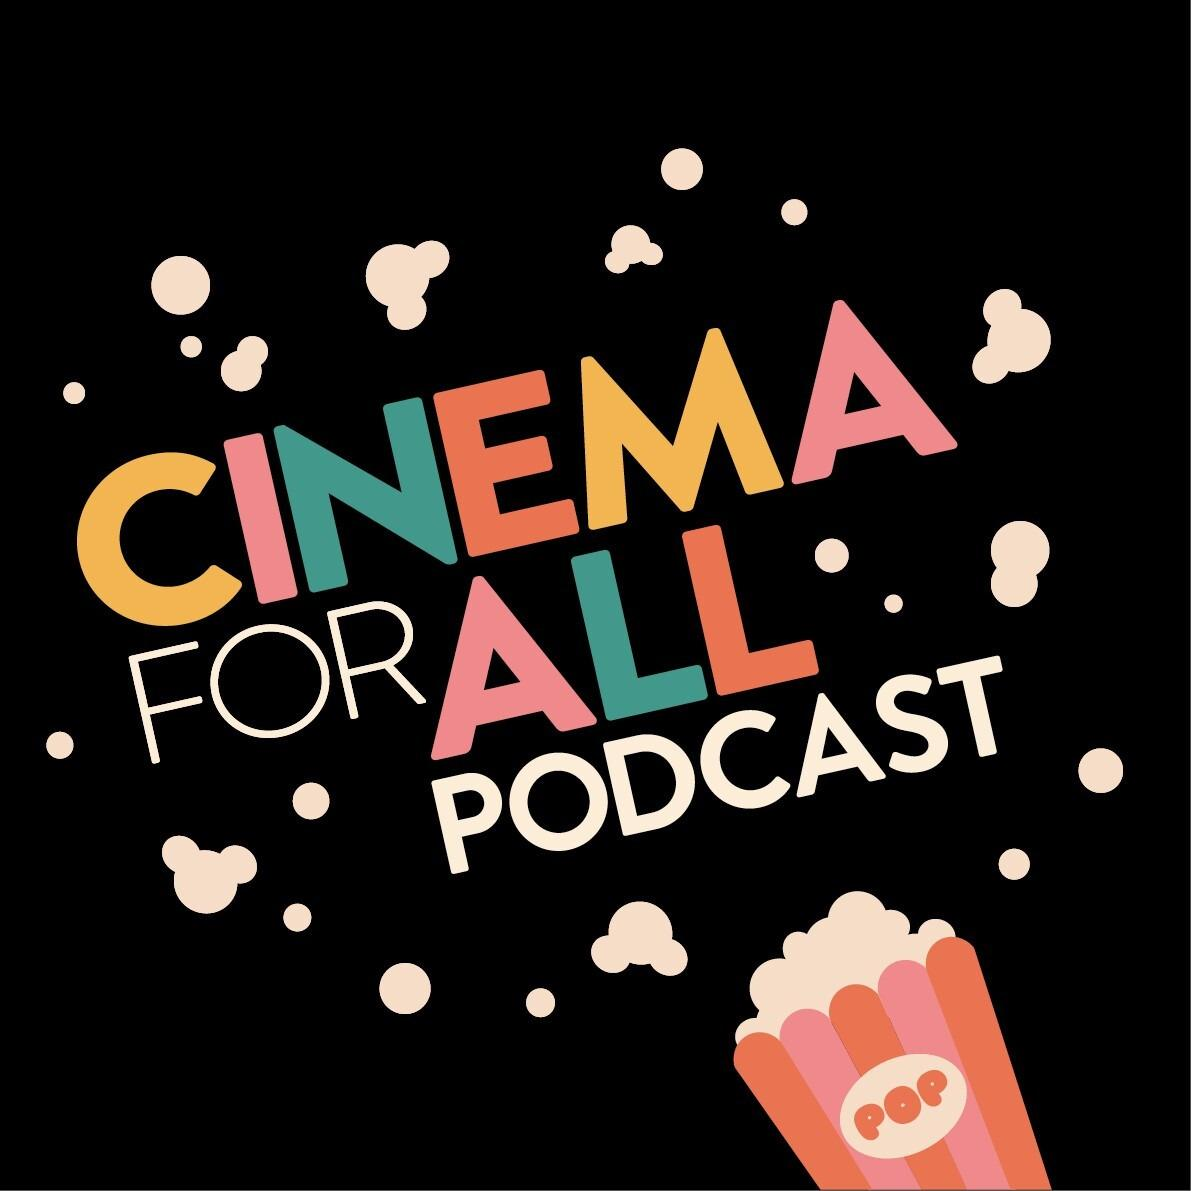 Cinema For All Podcast